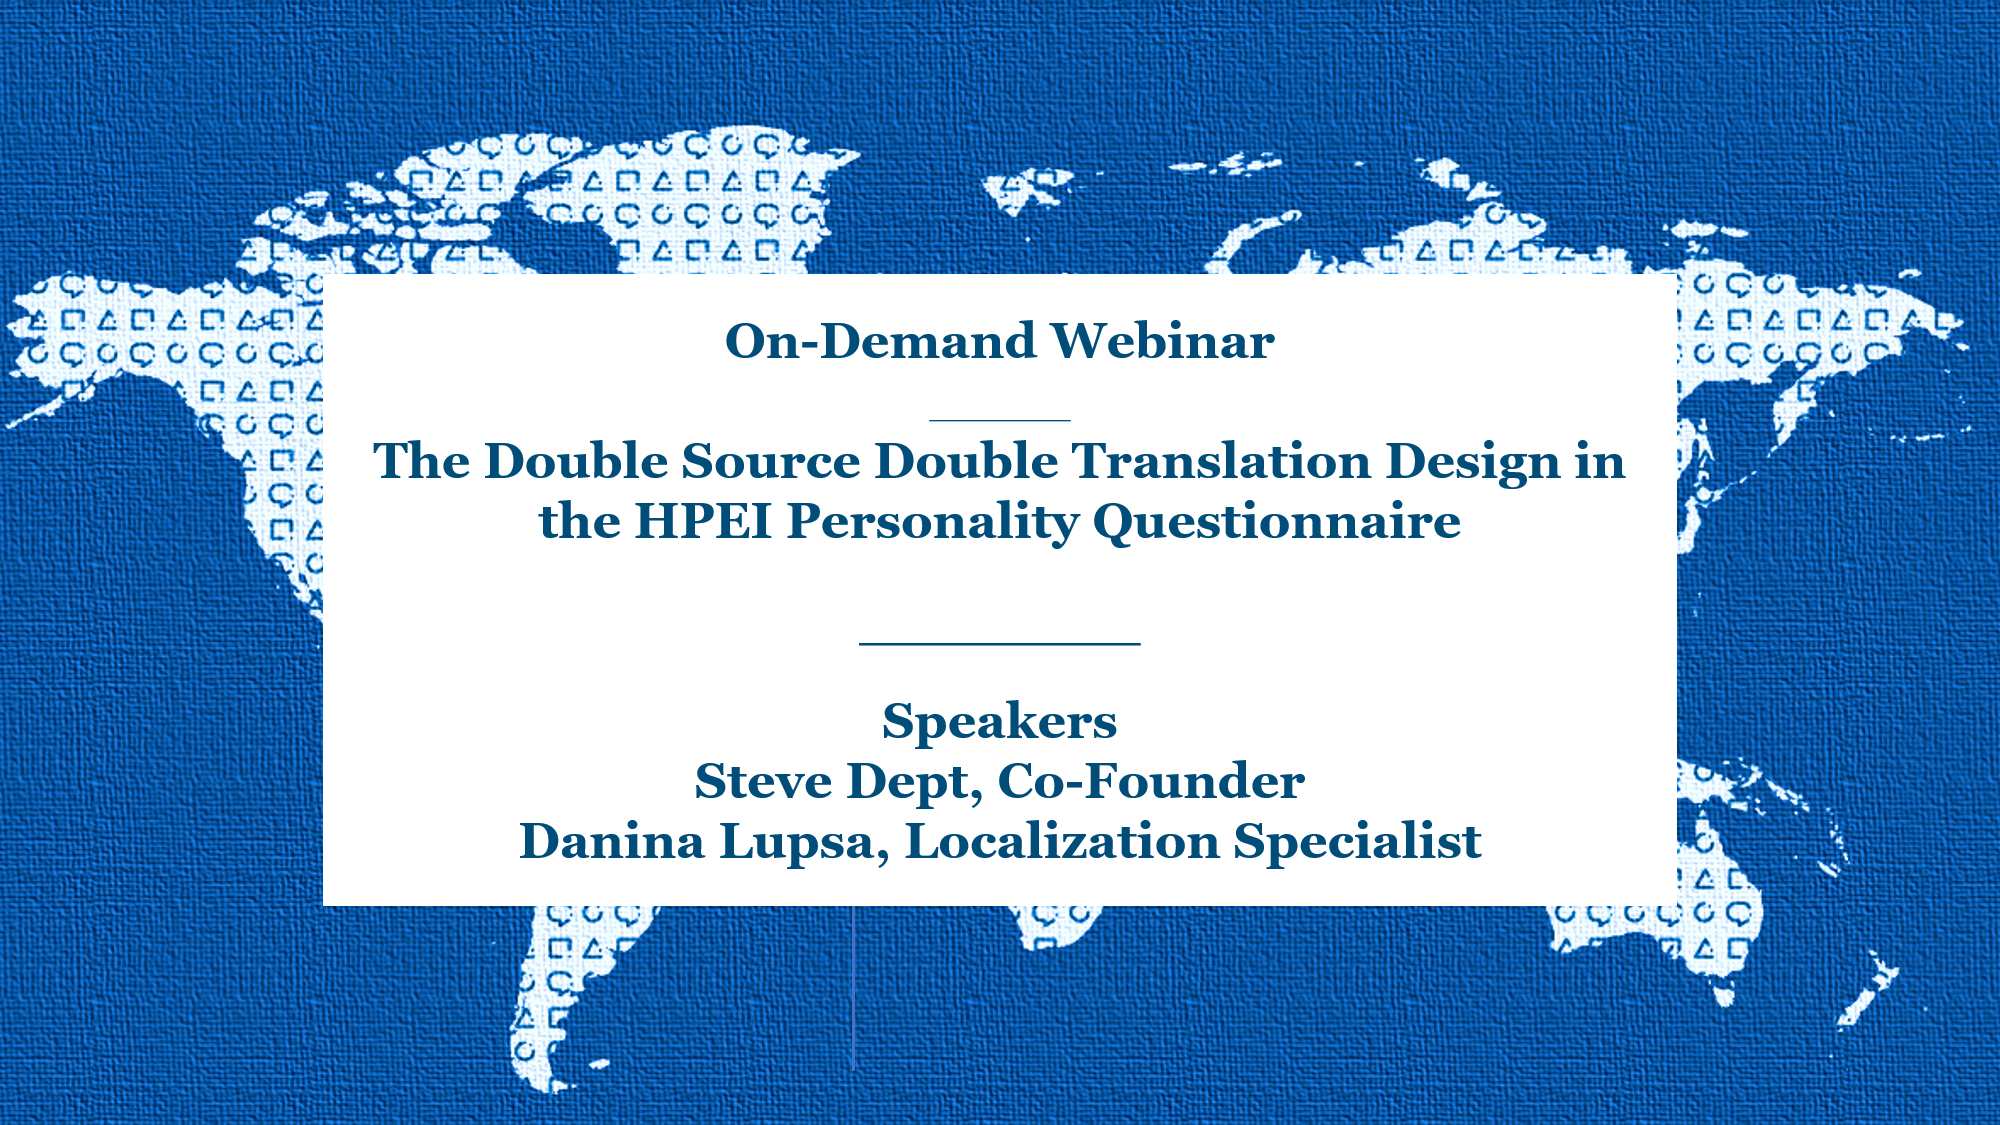 On-Demand Webinar | The Double Source Double Translation Design in the HPEI personality questionnaire